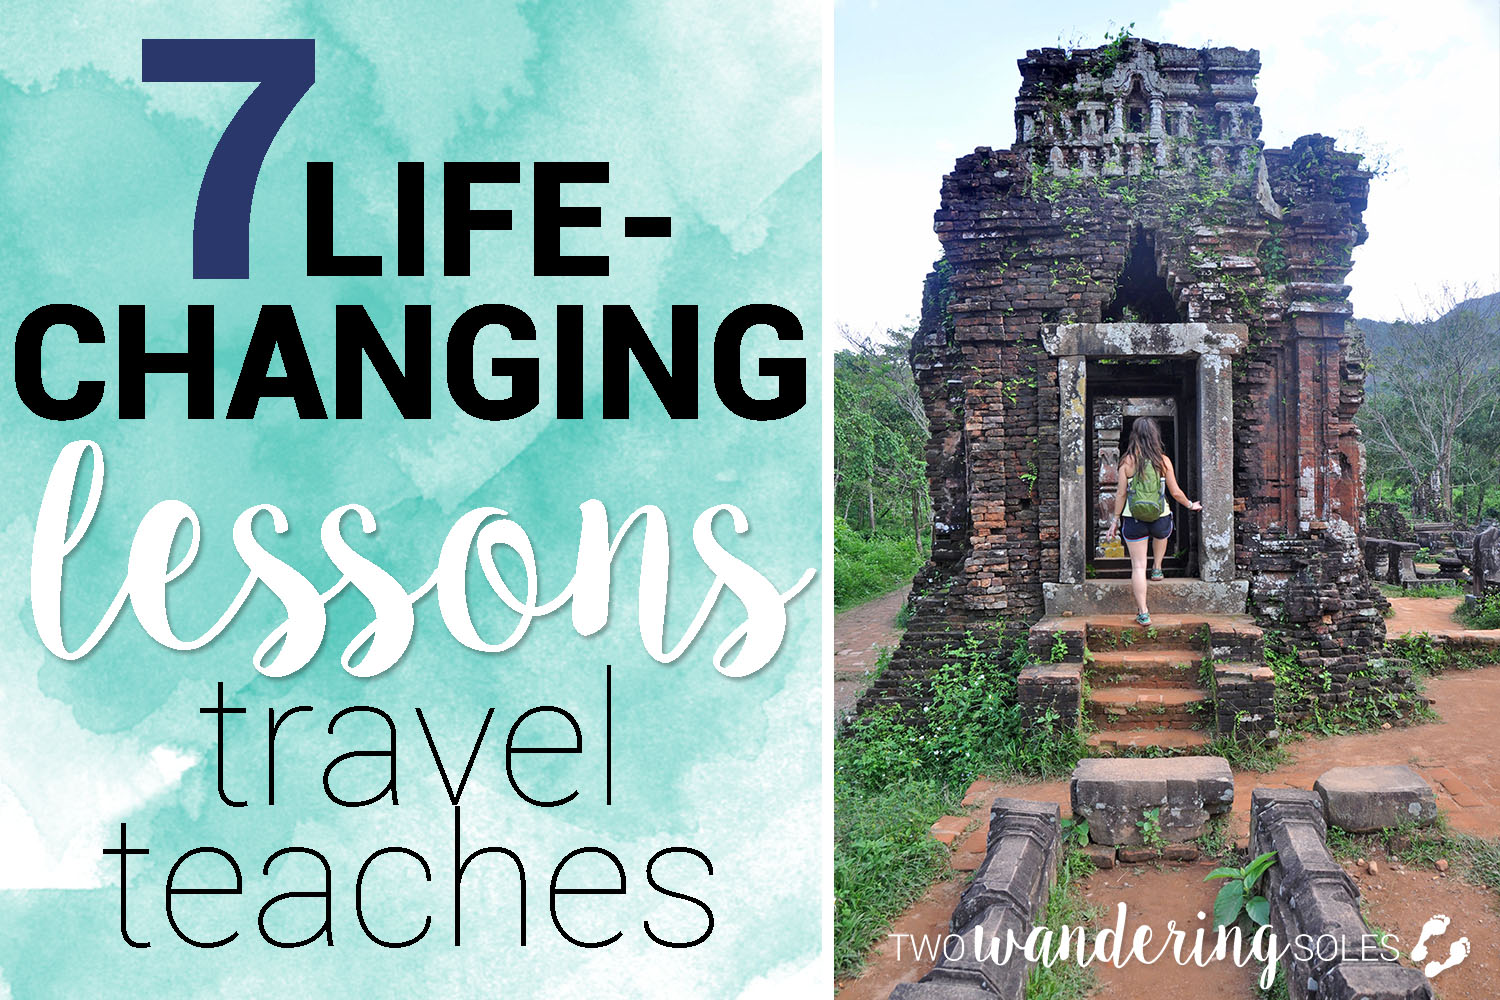 Life Changing Lessons Travel Teaches